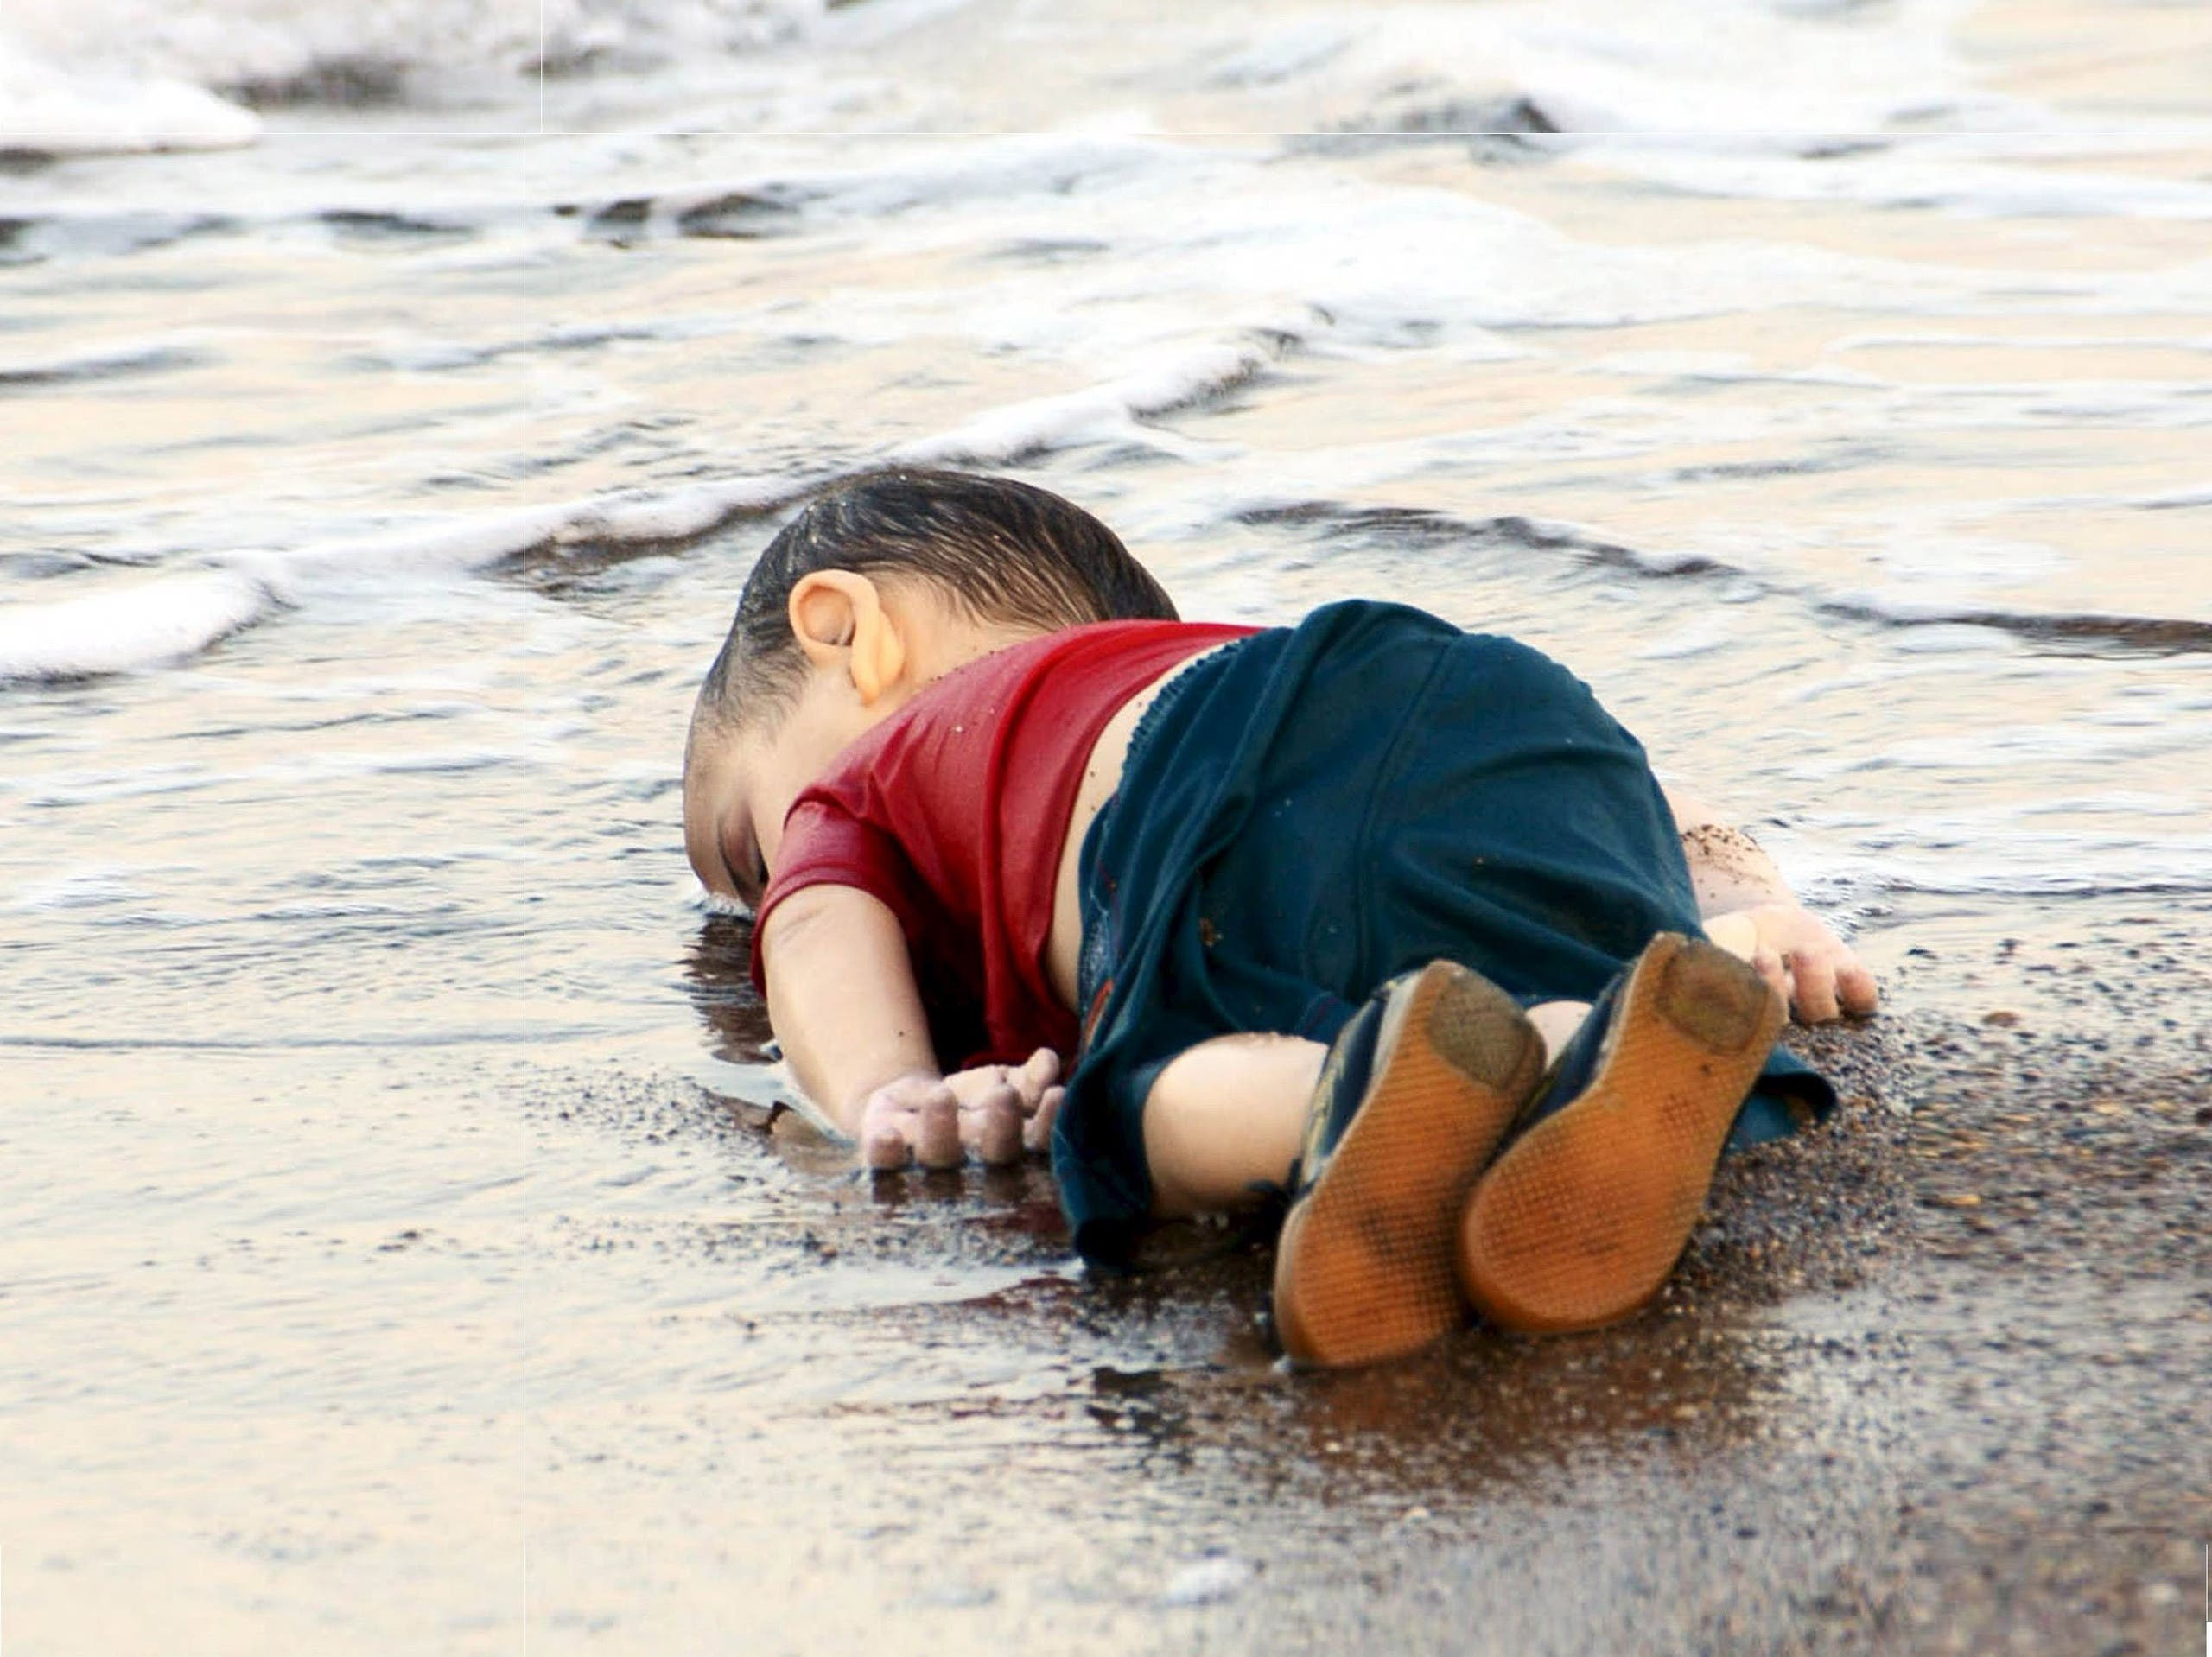 Aylan Kurdi drowned in a failed attempt to sail to the Greek island of Kos, lies on the shore in the Turkish coastal town of Bodrum, Turkey. (Reuters)